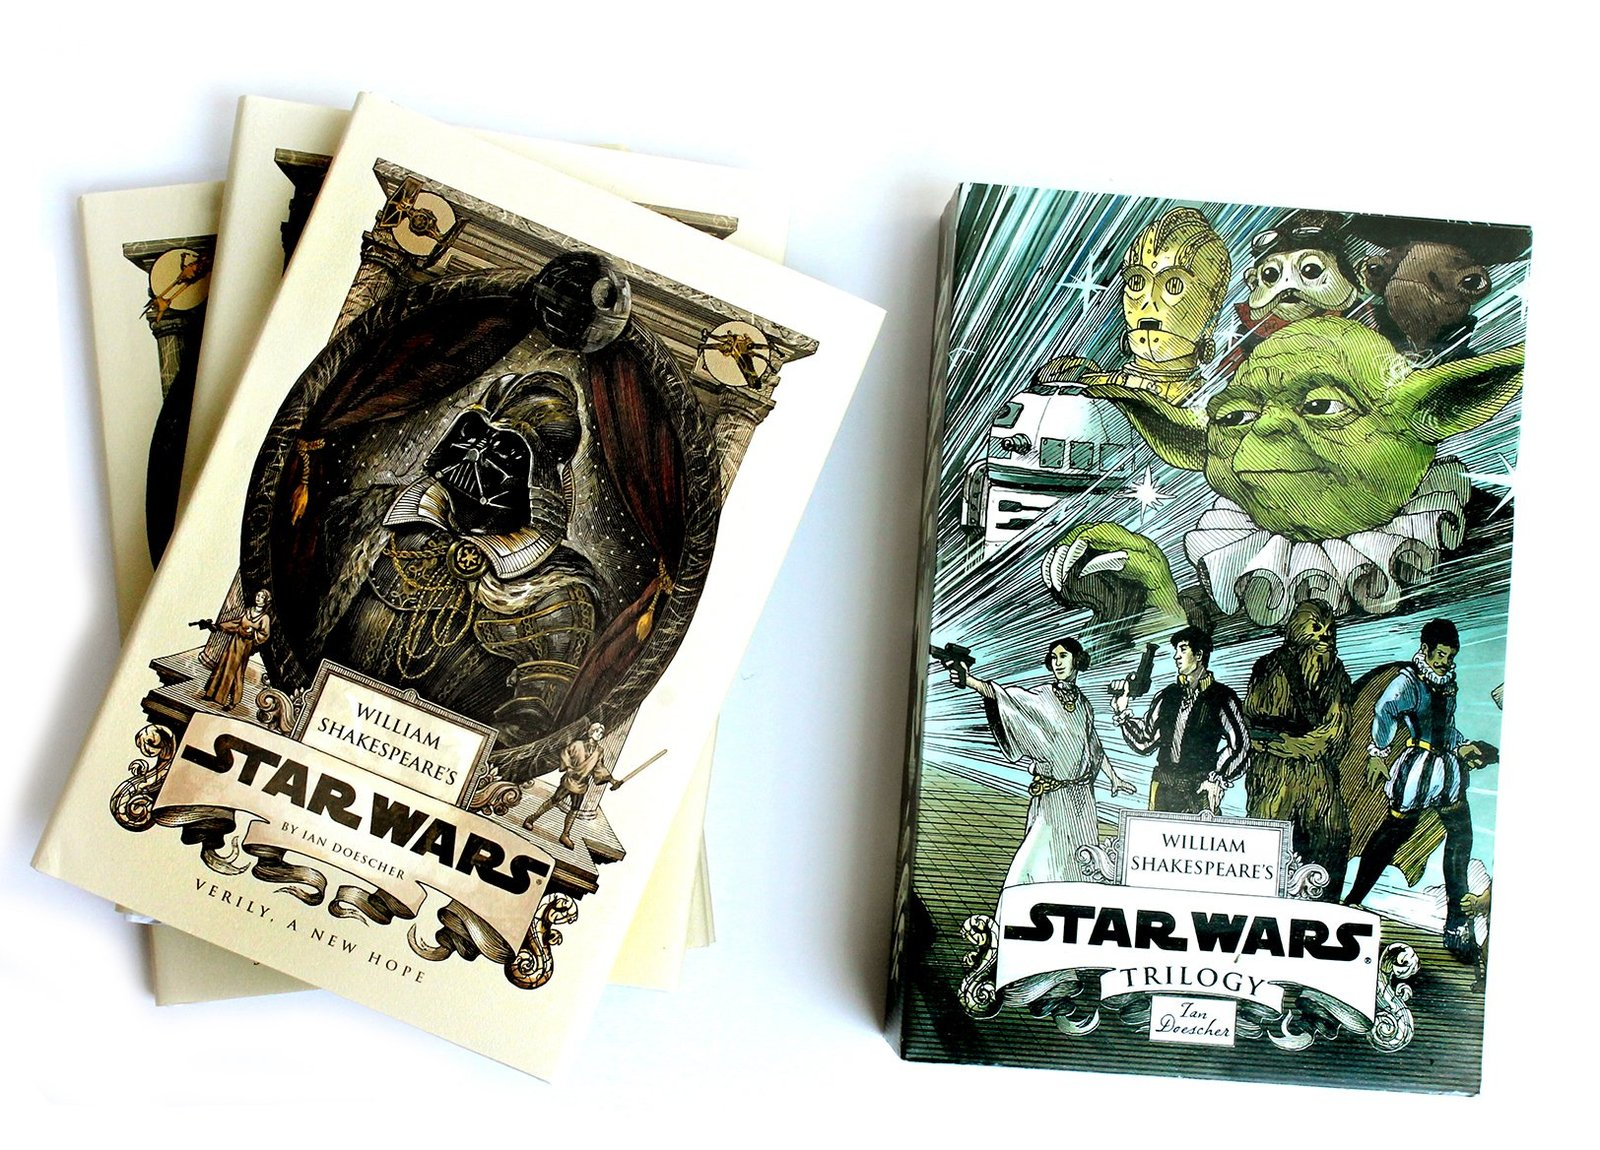 William Shakespeare's Star Wars Trilogy by Ian Doescher image